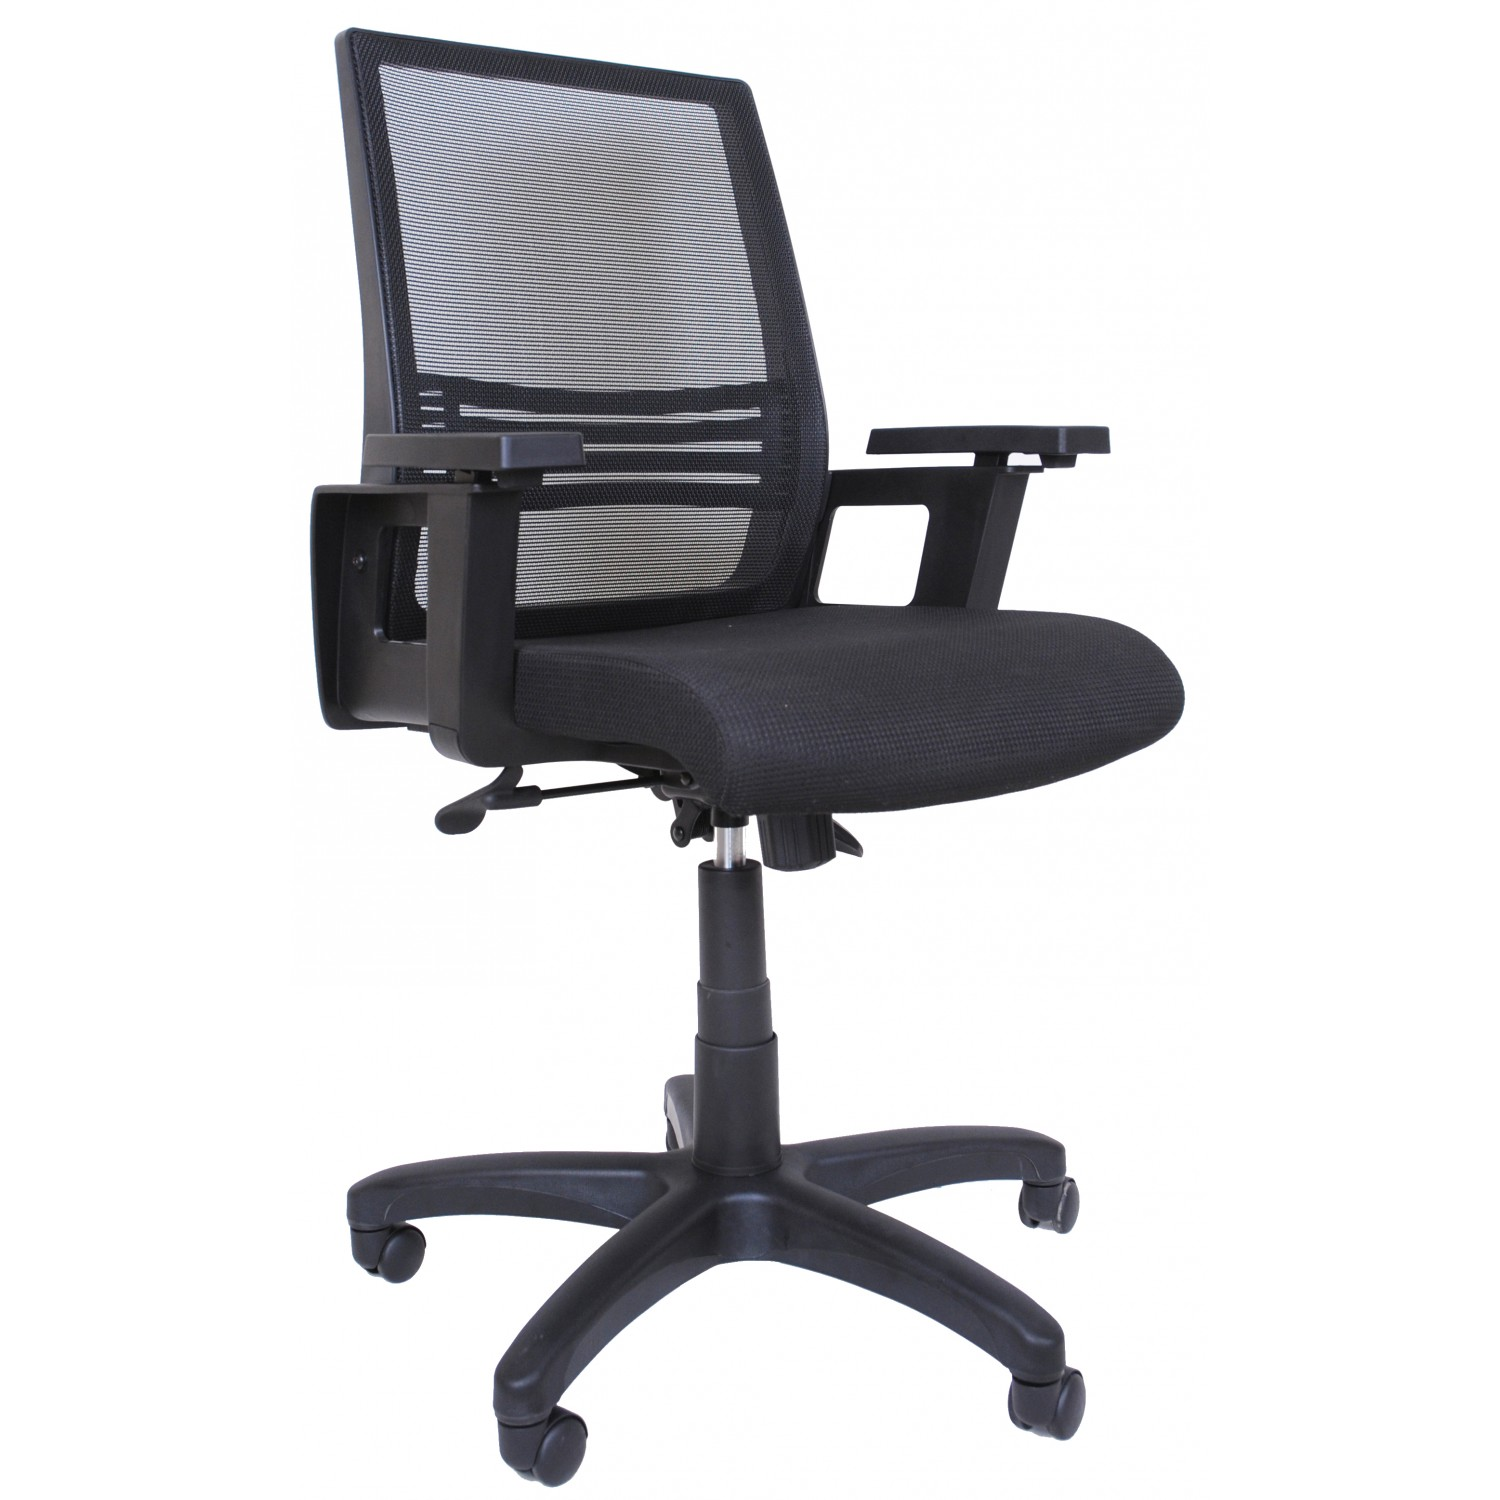 Flip Back Folding Conference Room Chair ME801 fice Furniture Since 1990